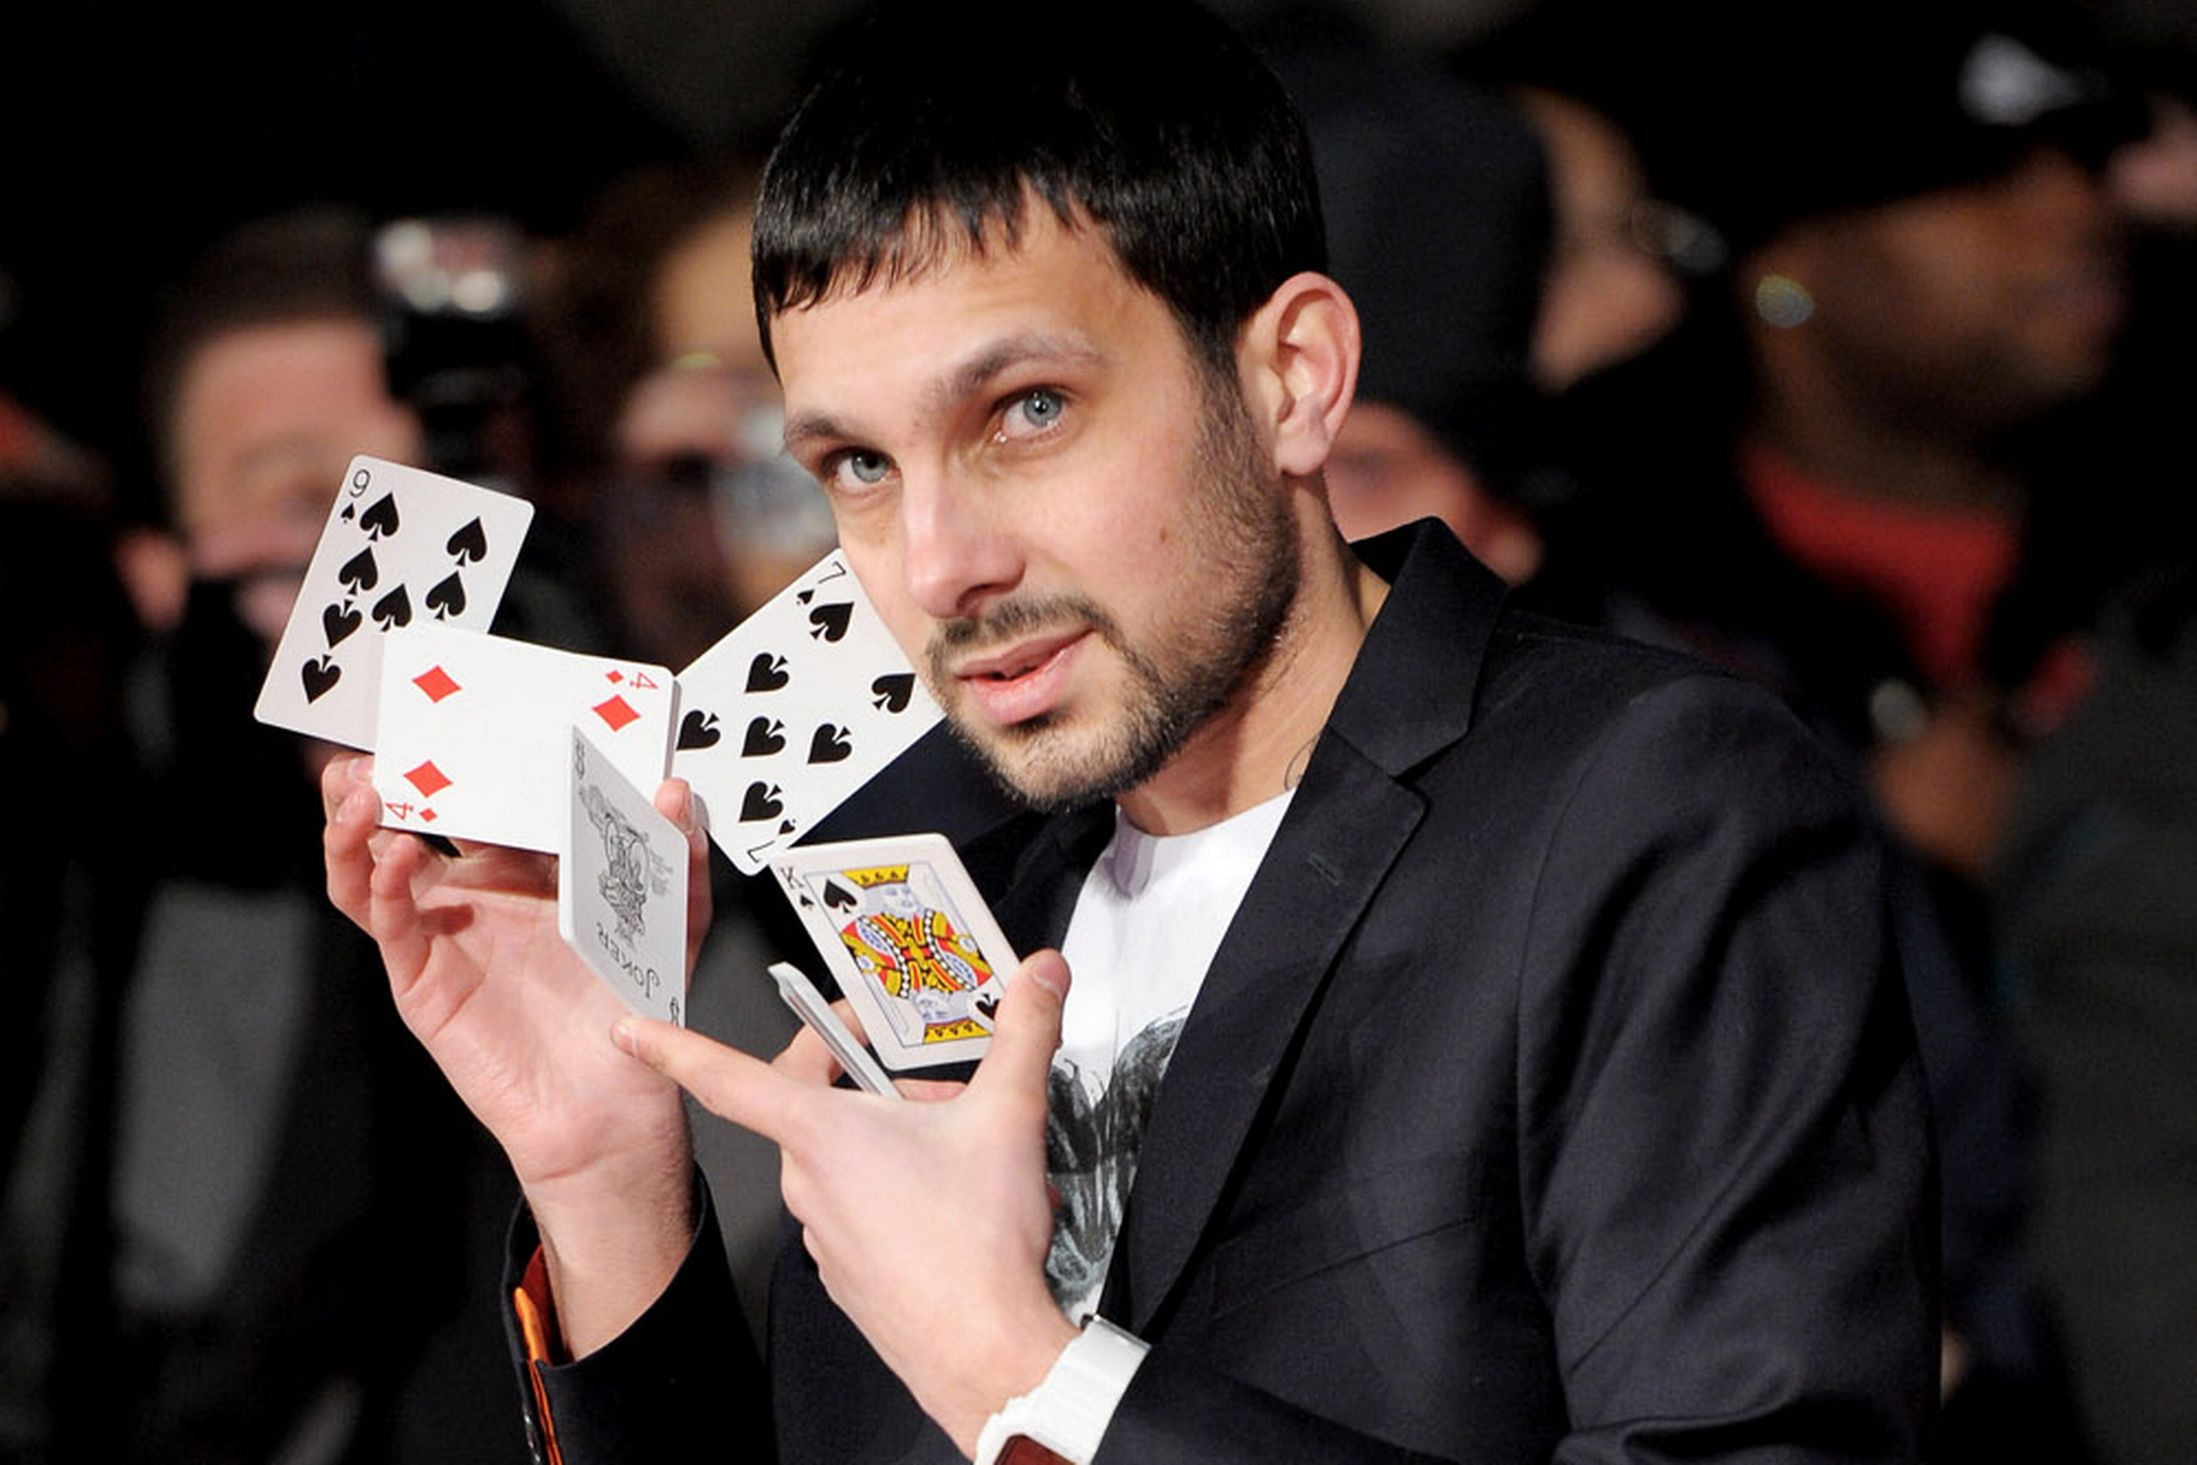 Dynamo images Dynamo magician HD wallpaper and background photos